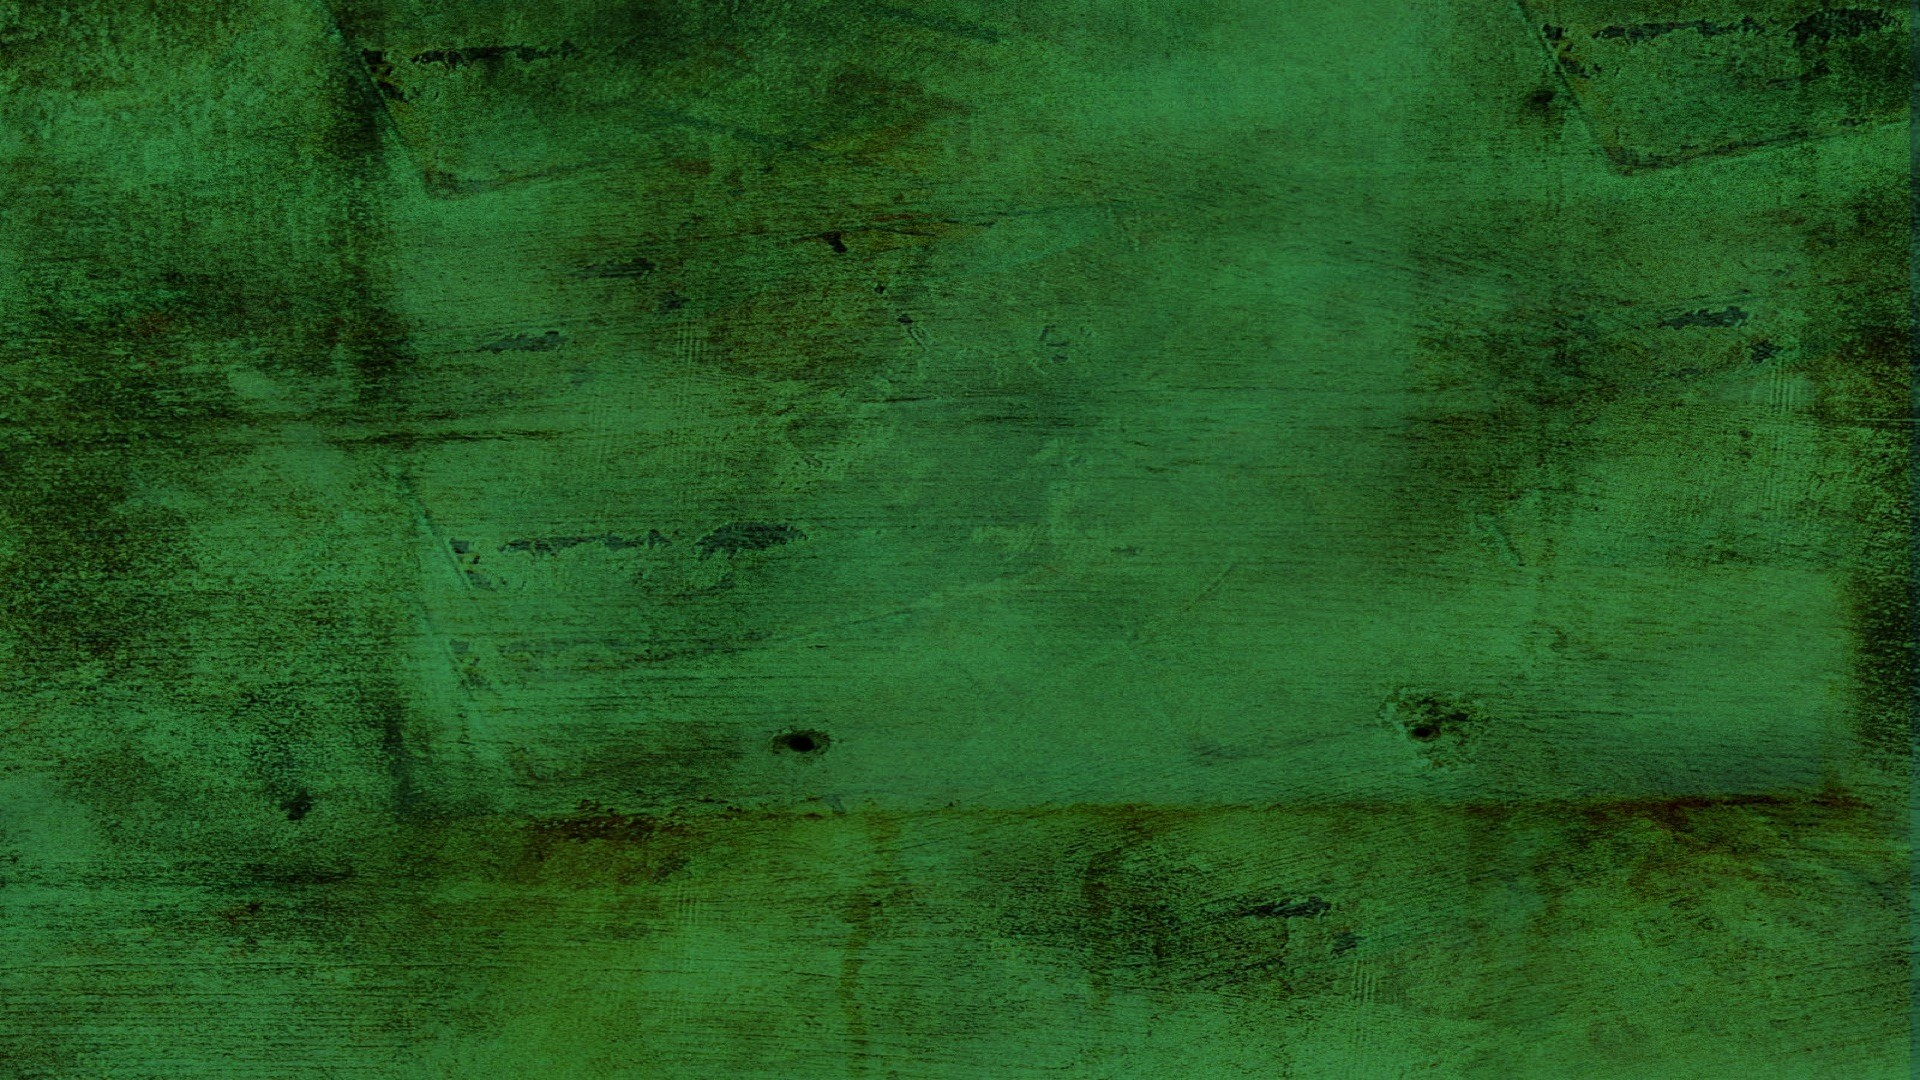 1920x1080 ... Dark Green Background Wallpaper - WallpaperSafari ...